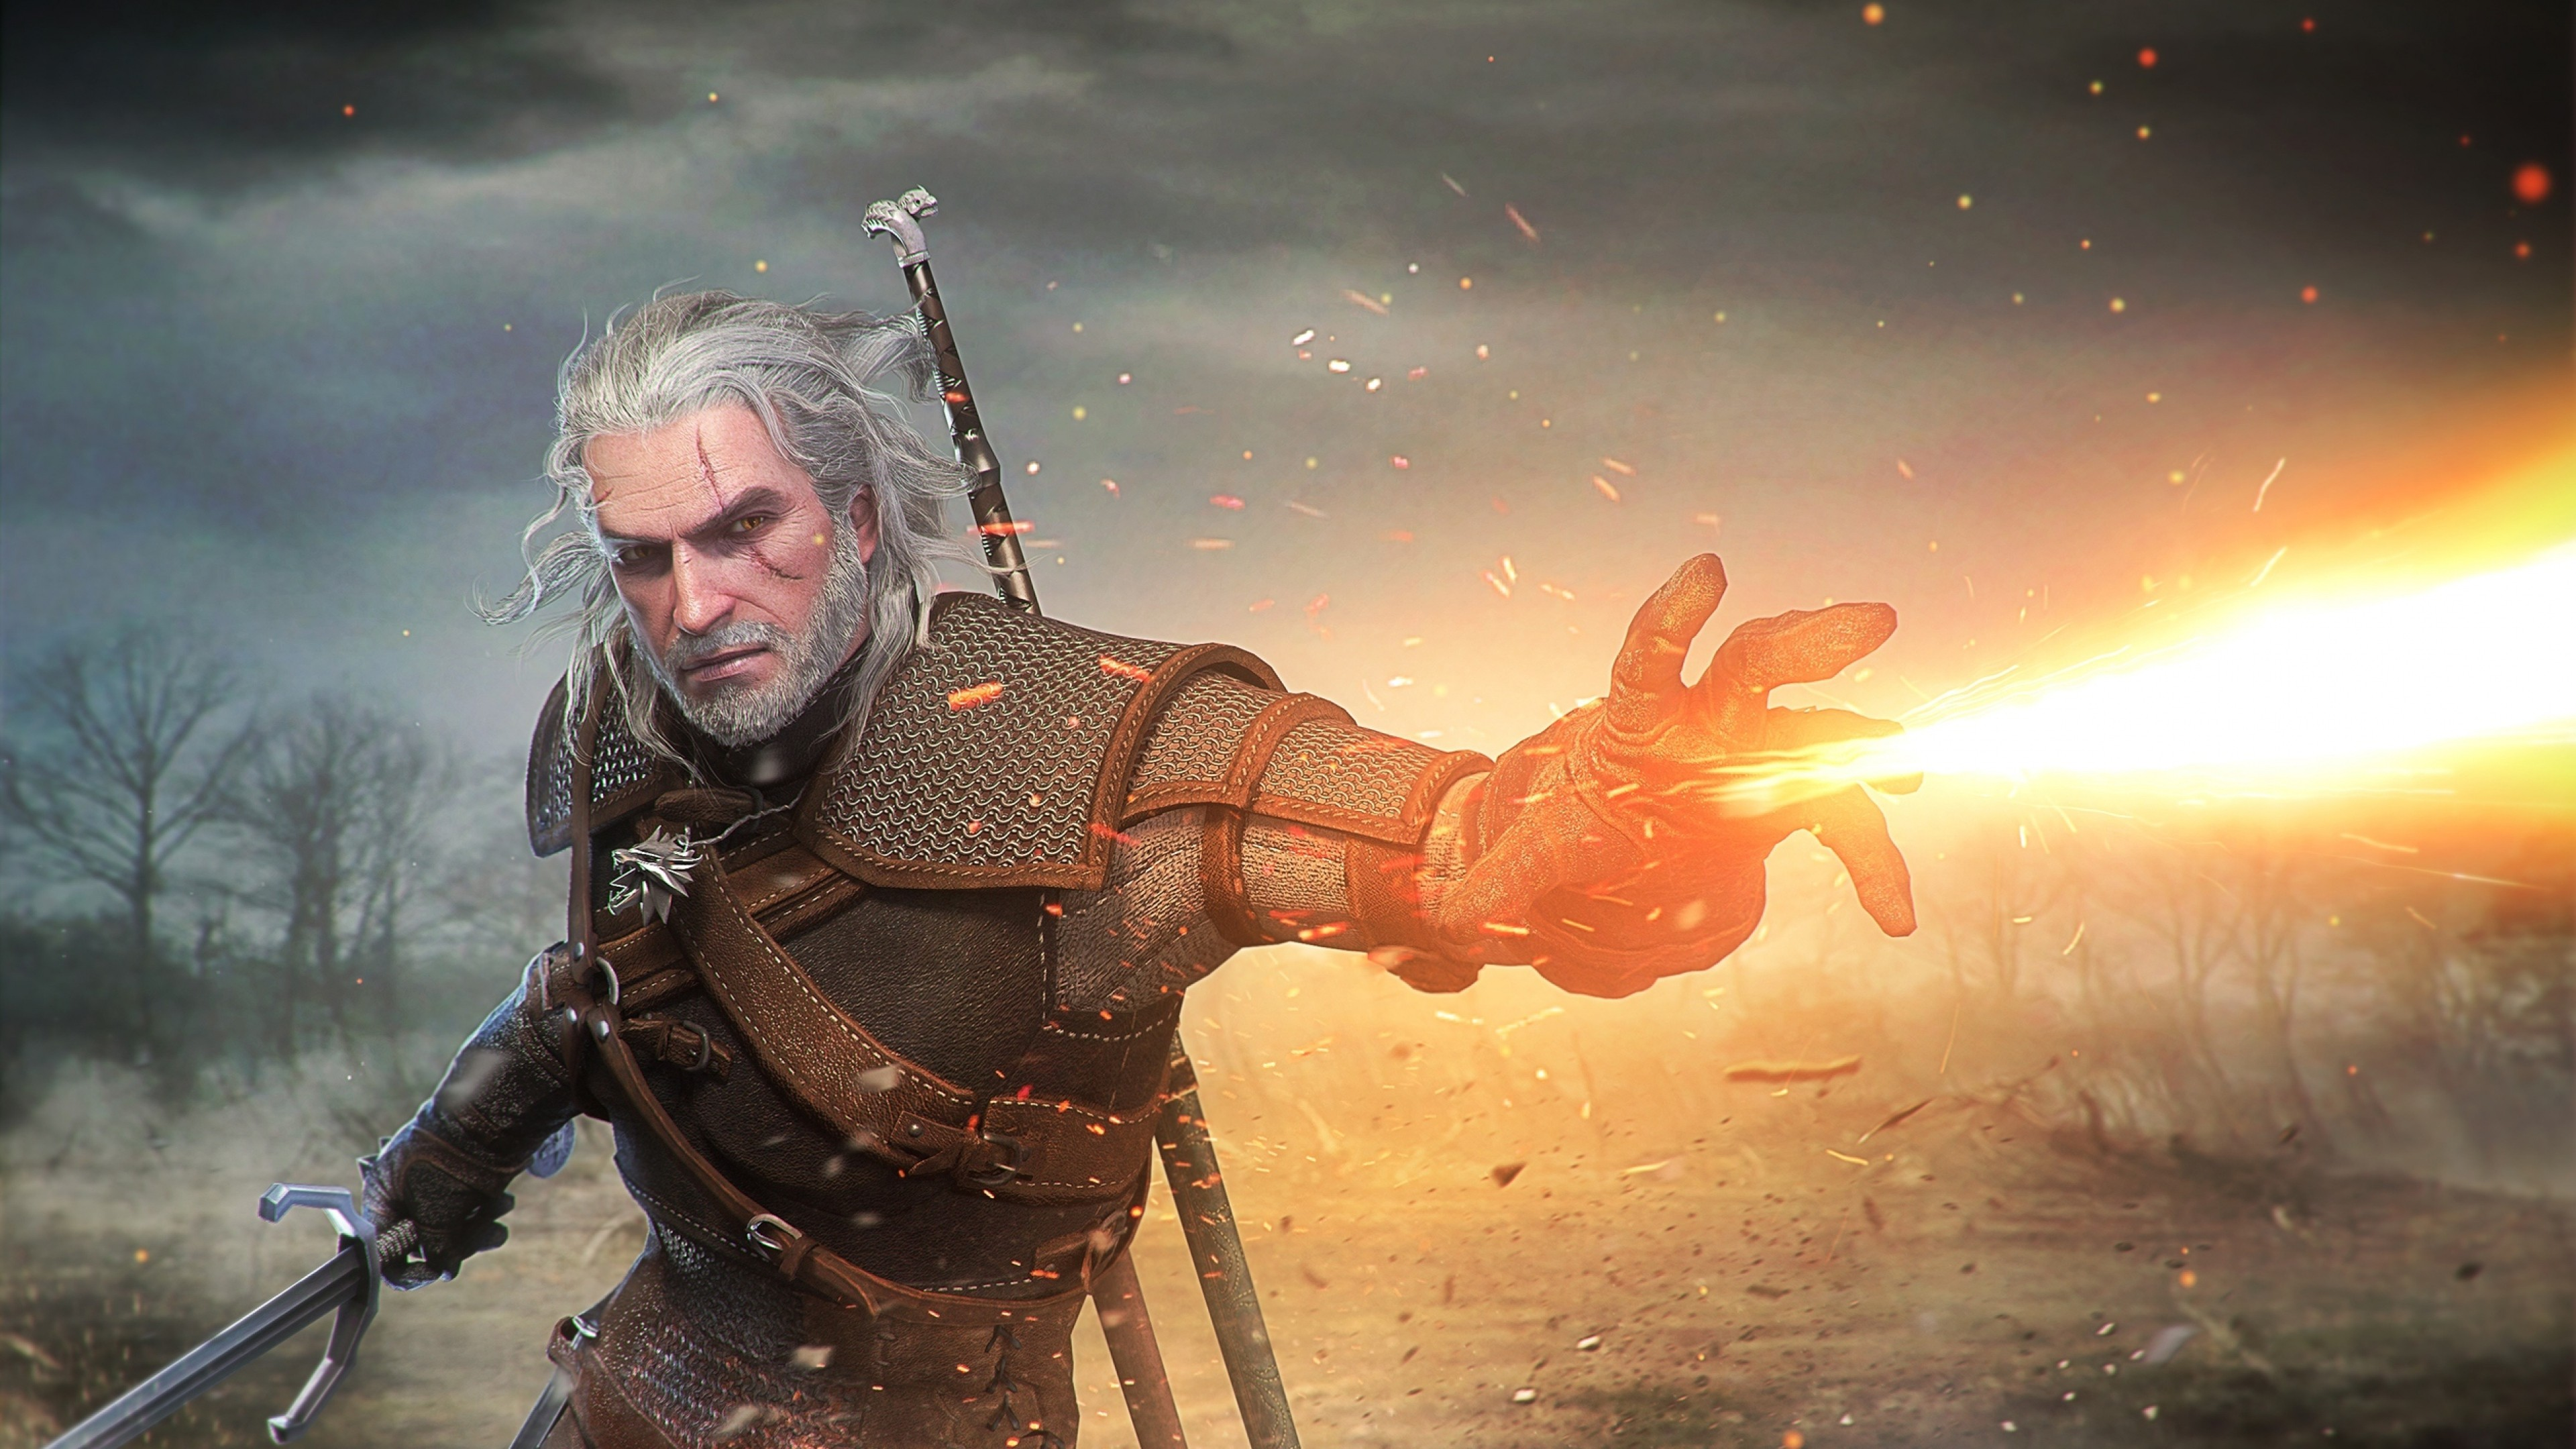 The Witcher 3 Wild Hunt Artwork Hd Games 4k Wallpapers Images